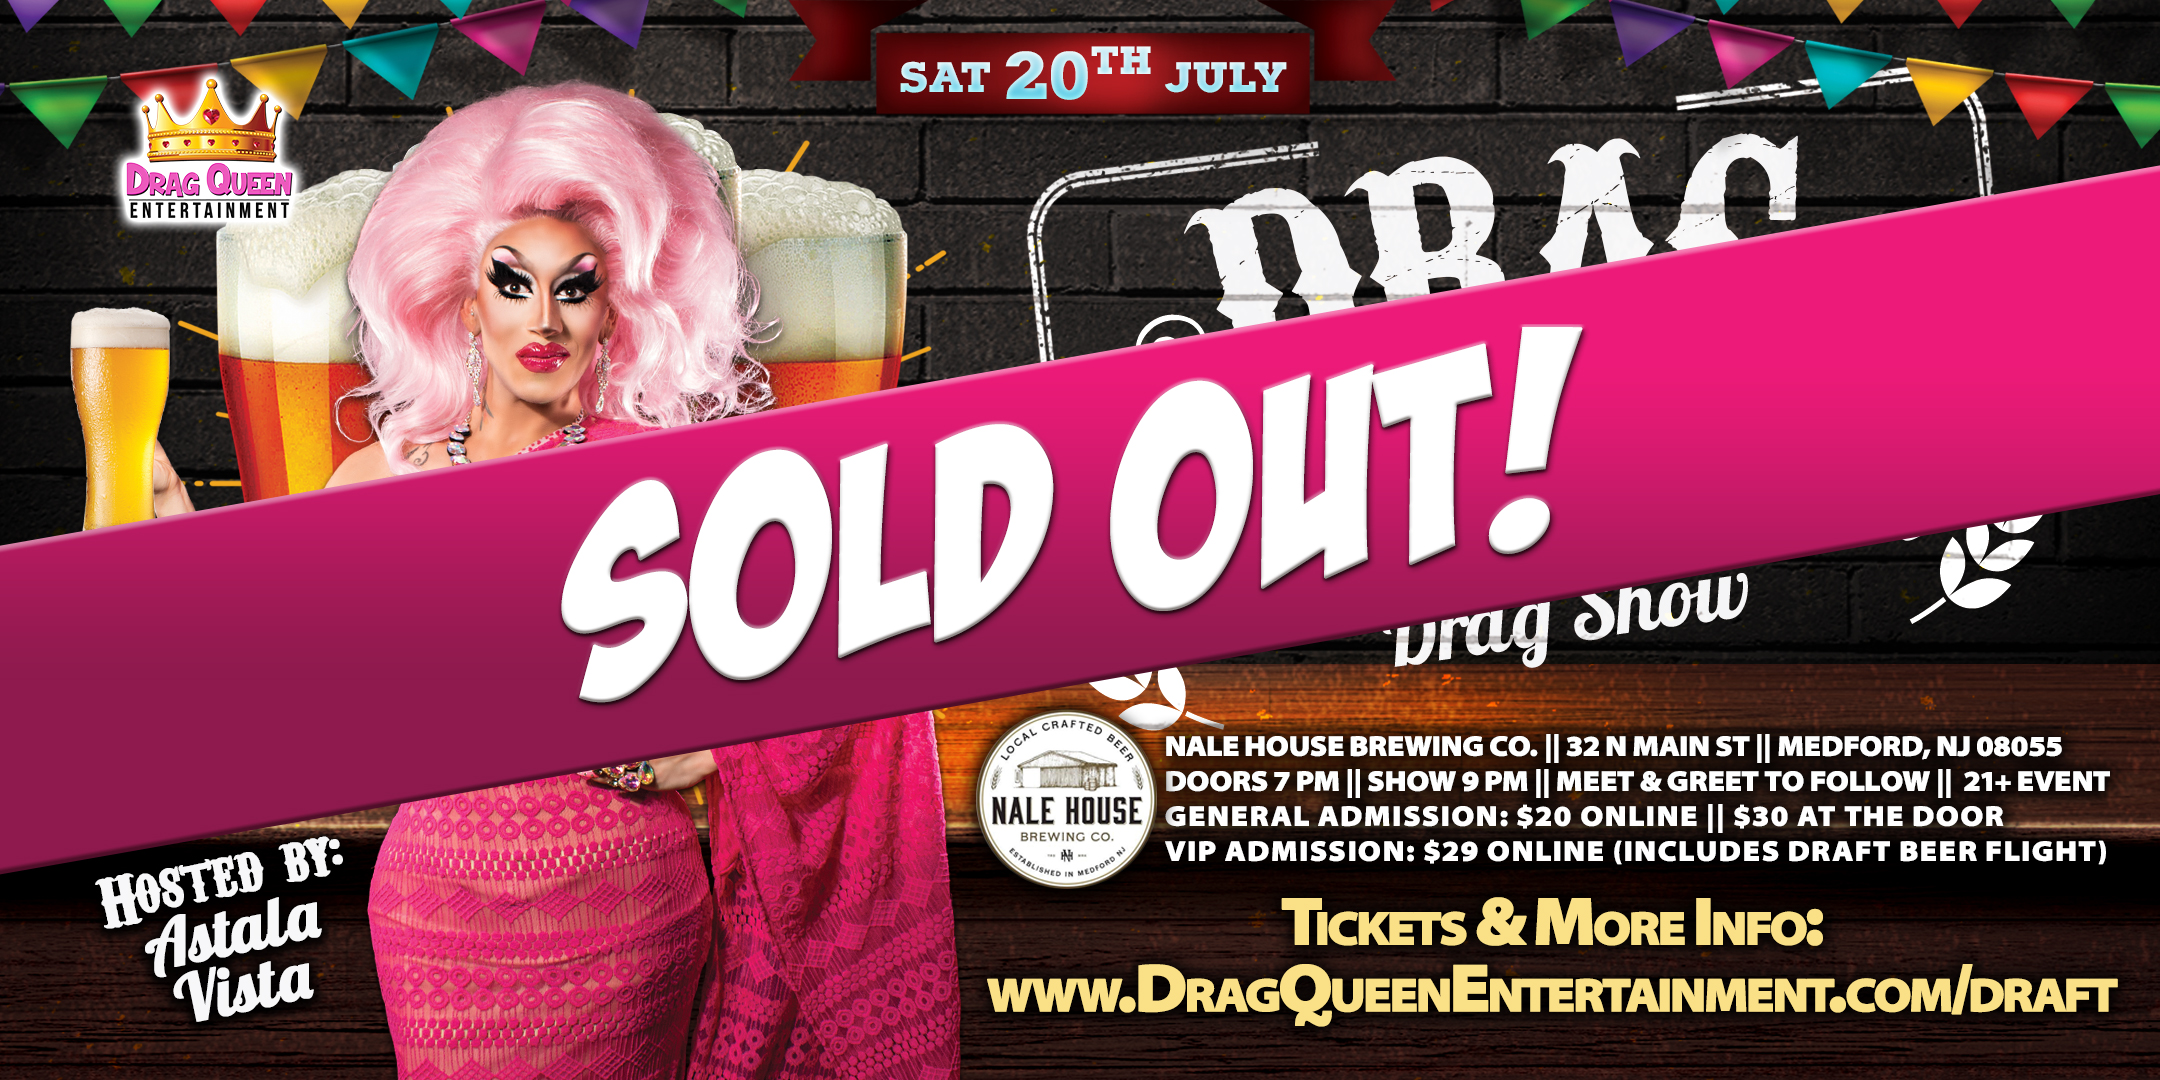 Drag-&-a-Draft-Header-July-SOLD-OUT.jpg